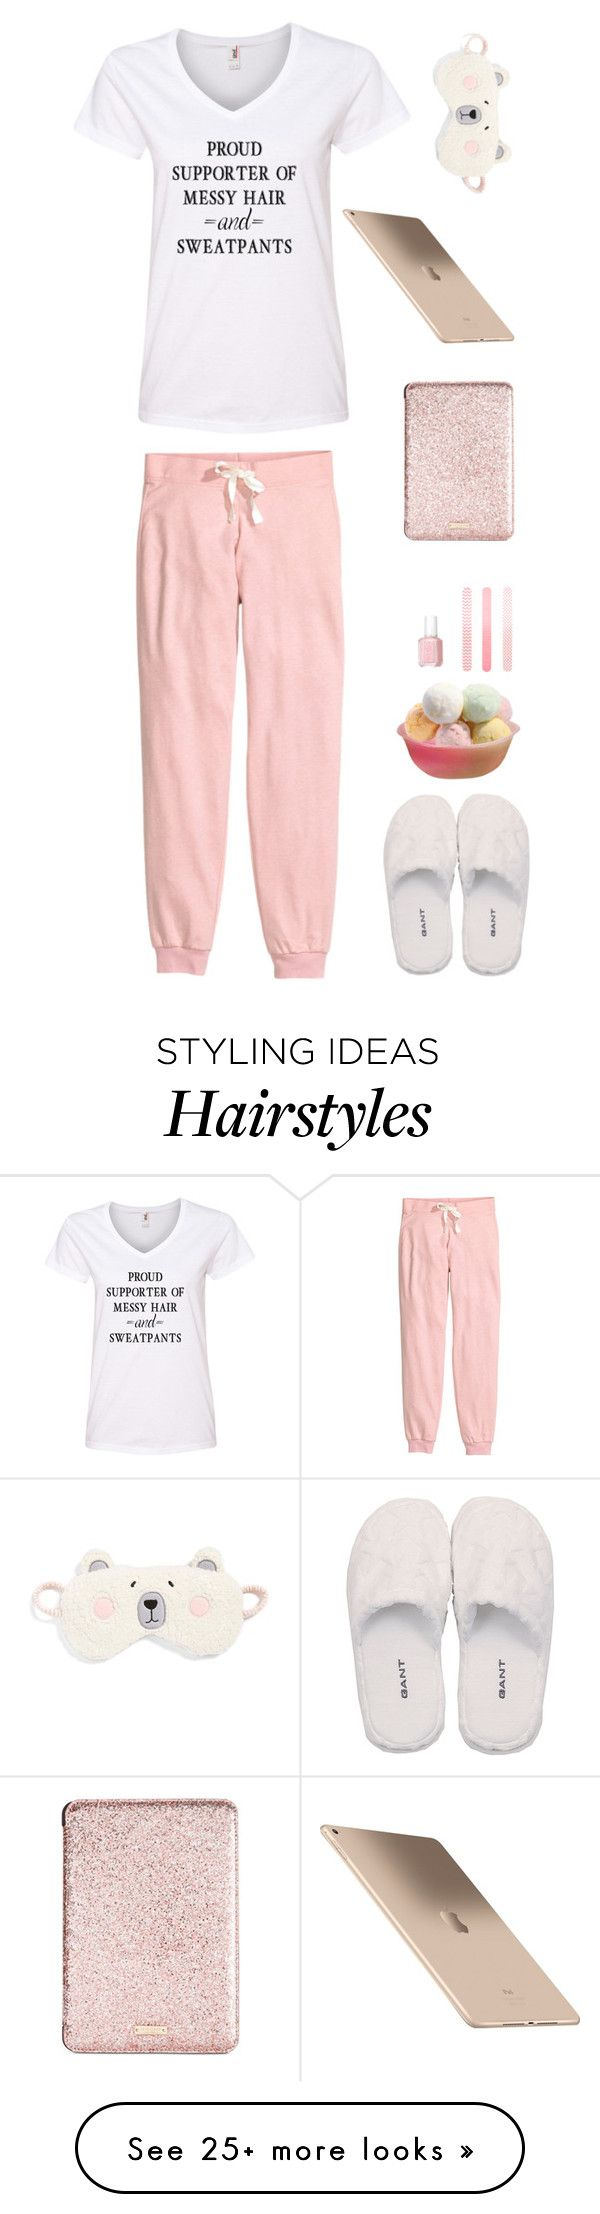 """""""Proud supporter of messy hair and sweatpants"""" by musicfriend1 on Polyvore featuring H&M, GANT, Make + Model, Kate Spade, Accessorize and Essie"""